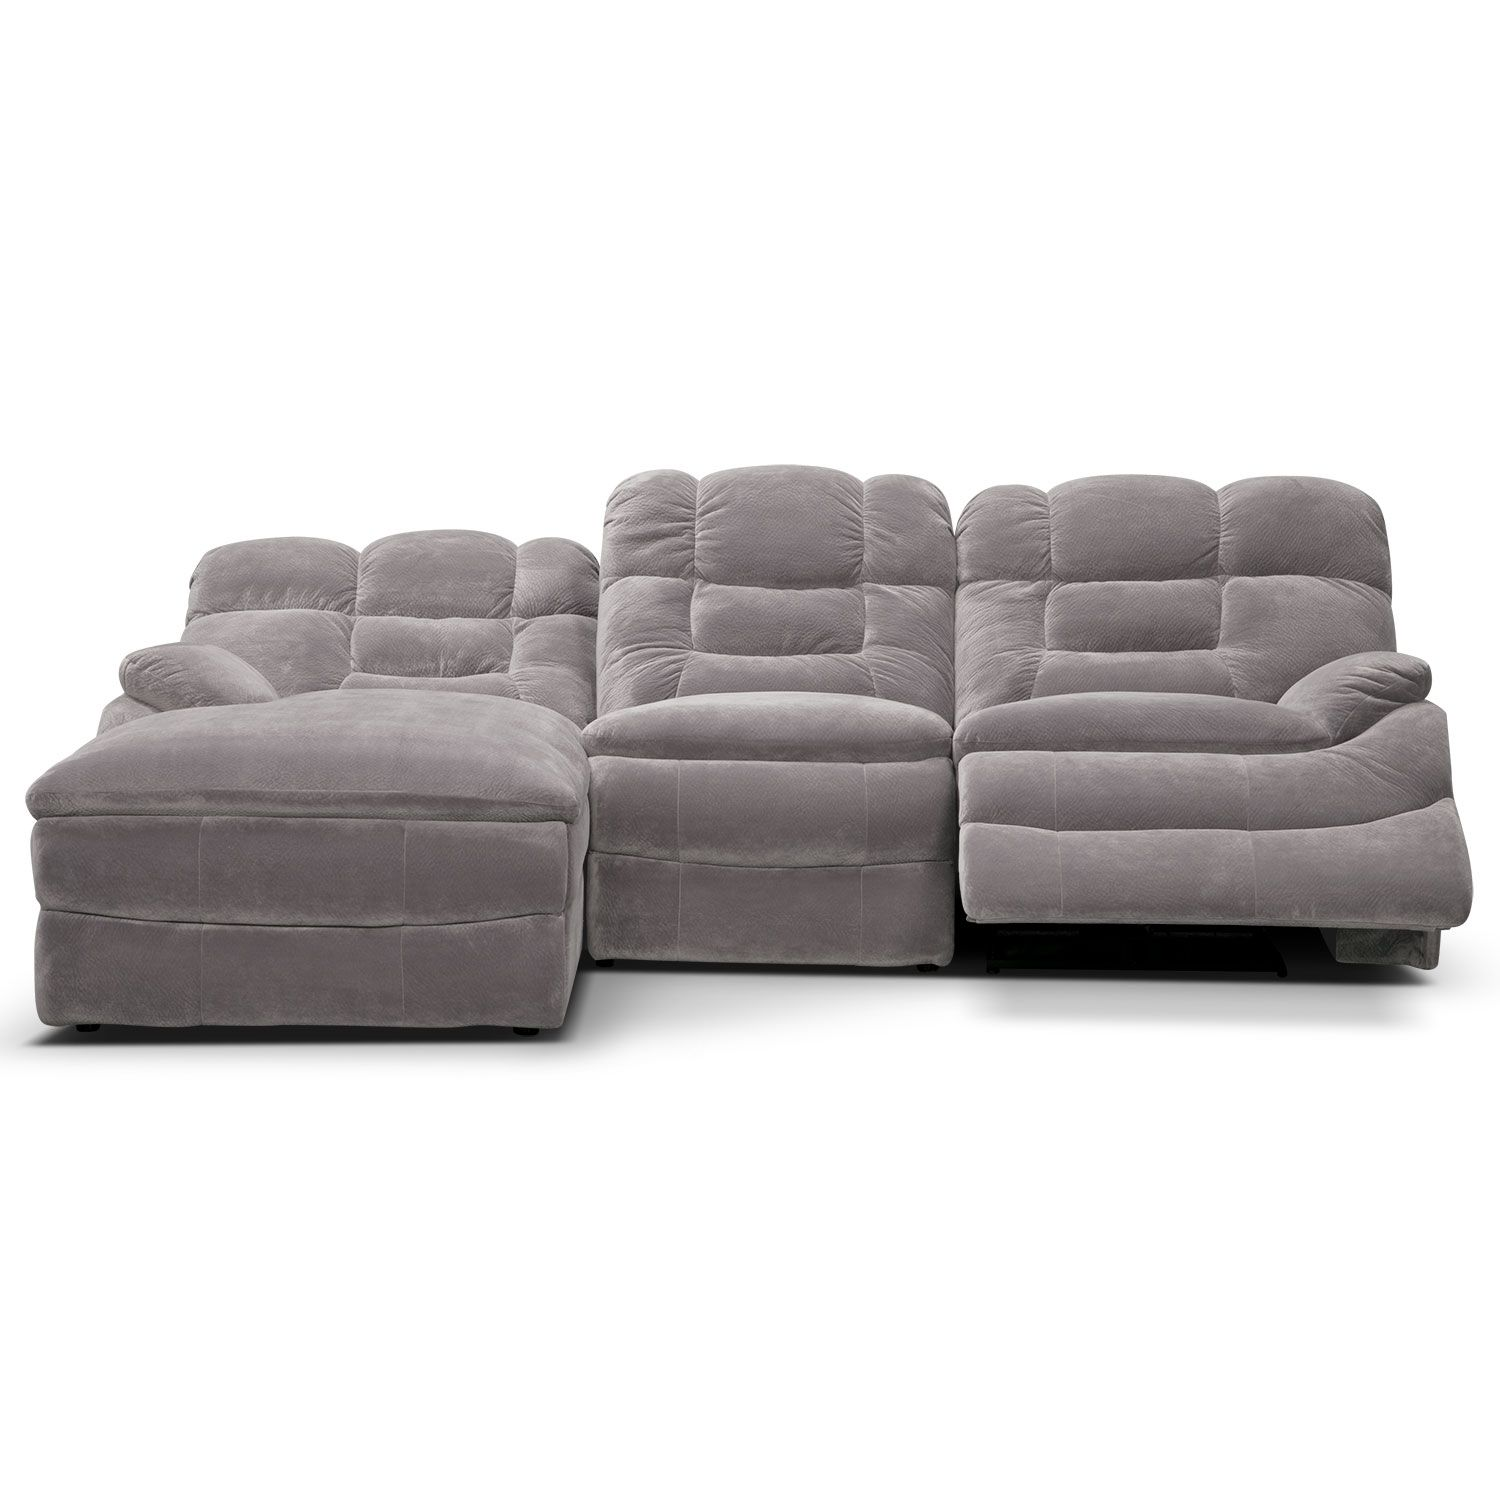 Groovy Big Softie 3 Piece Power Reclining Sectional With Chaise Onthecornerstone Fun Painted Chair Ideas Images Onthecornerstoneorg